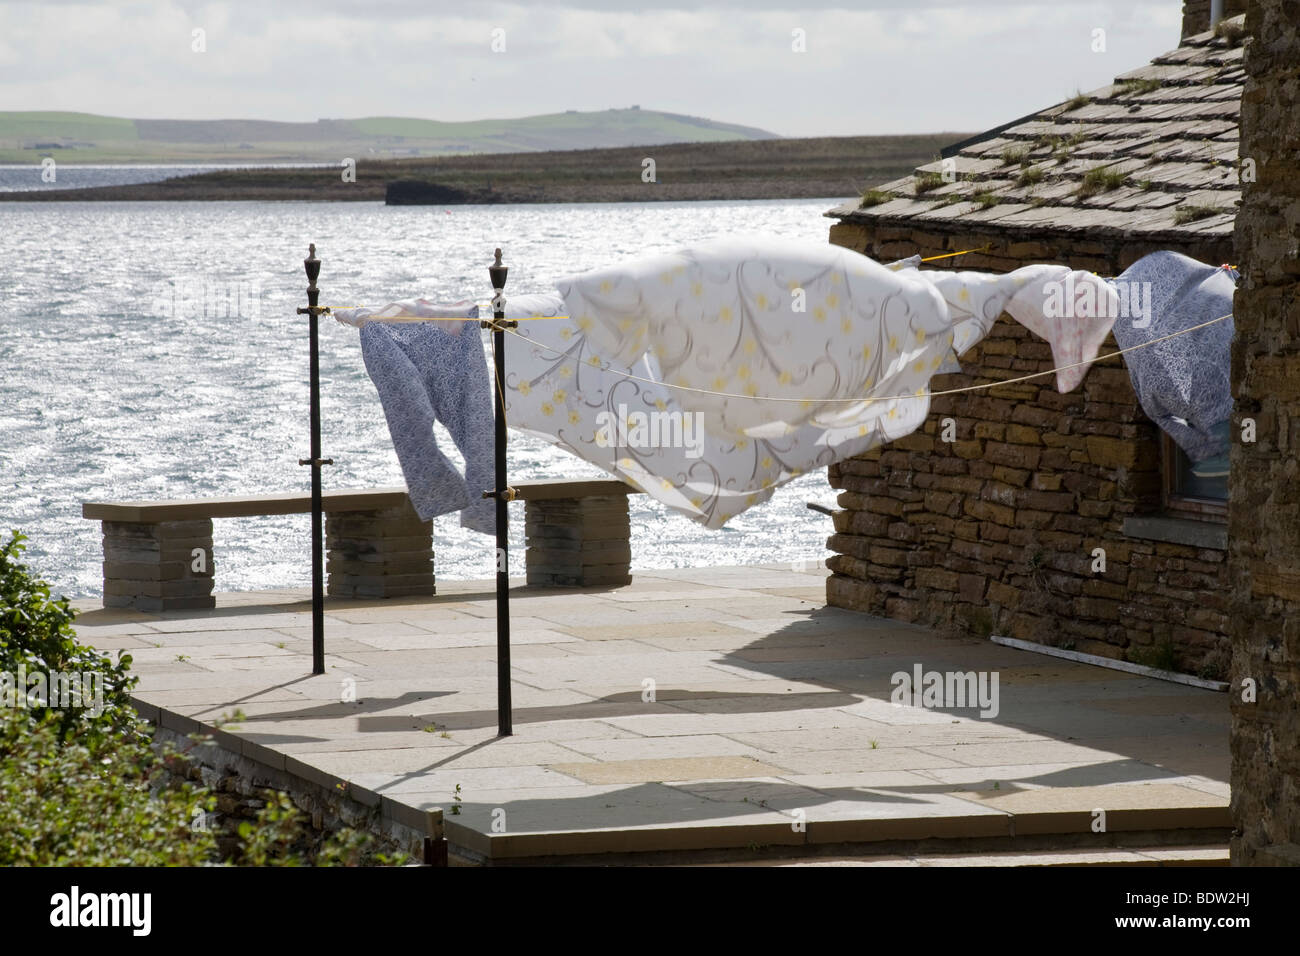 drying clothes on a terrace at the sea in stromness, orkney islands, scotland - Stock Image